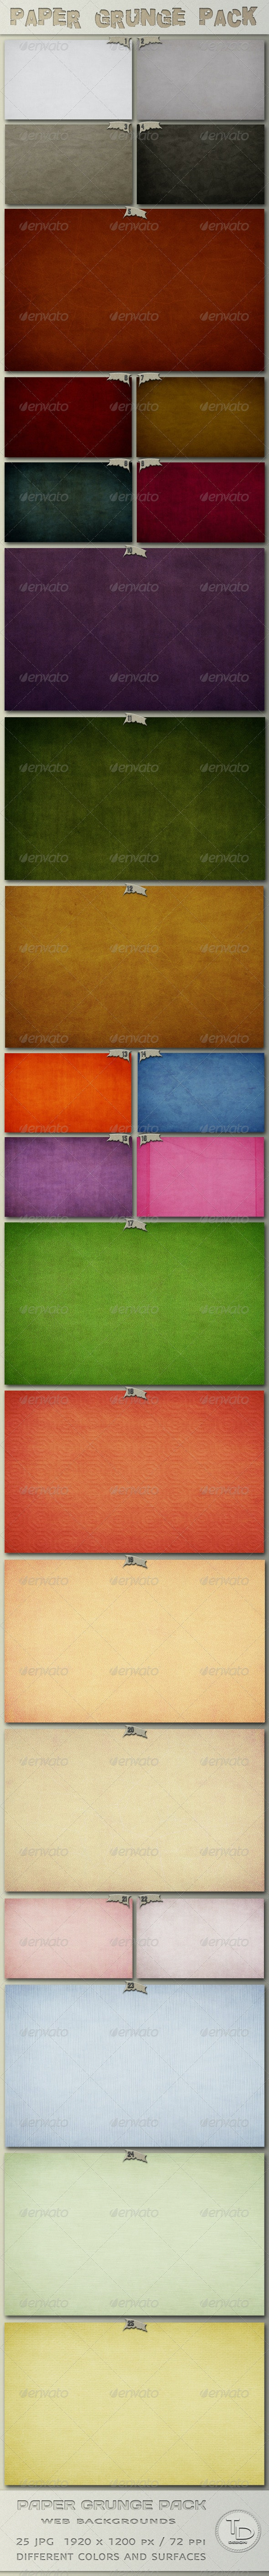 Paper Grunge Pack - Miscellaneous Backgrounds